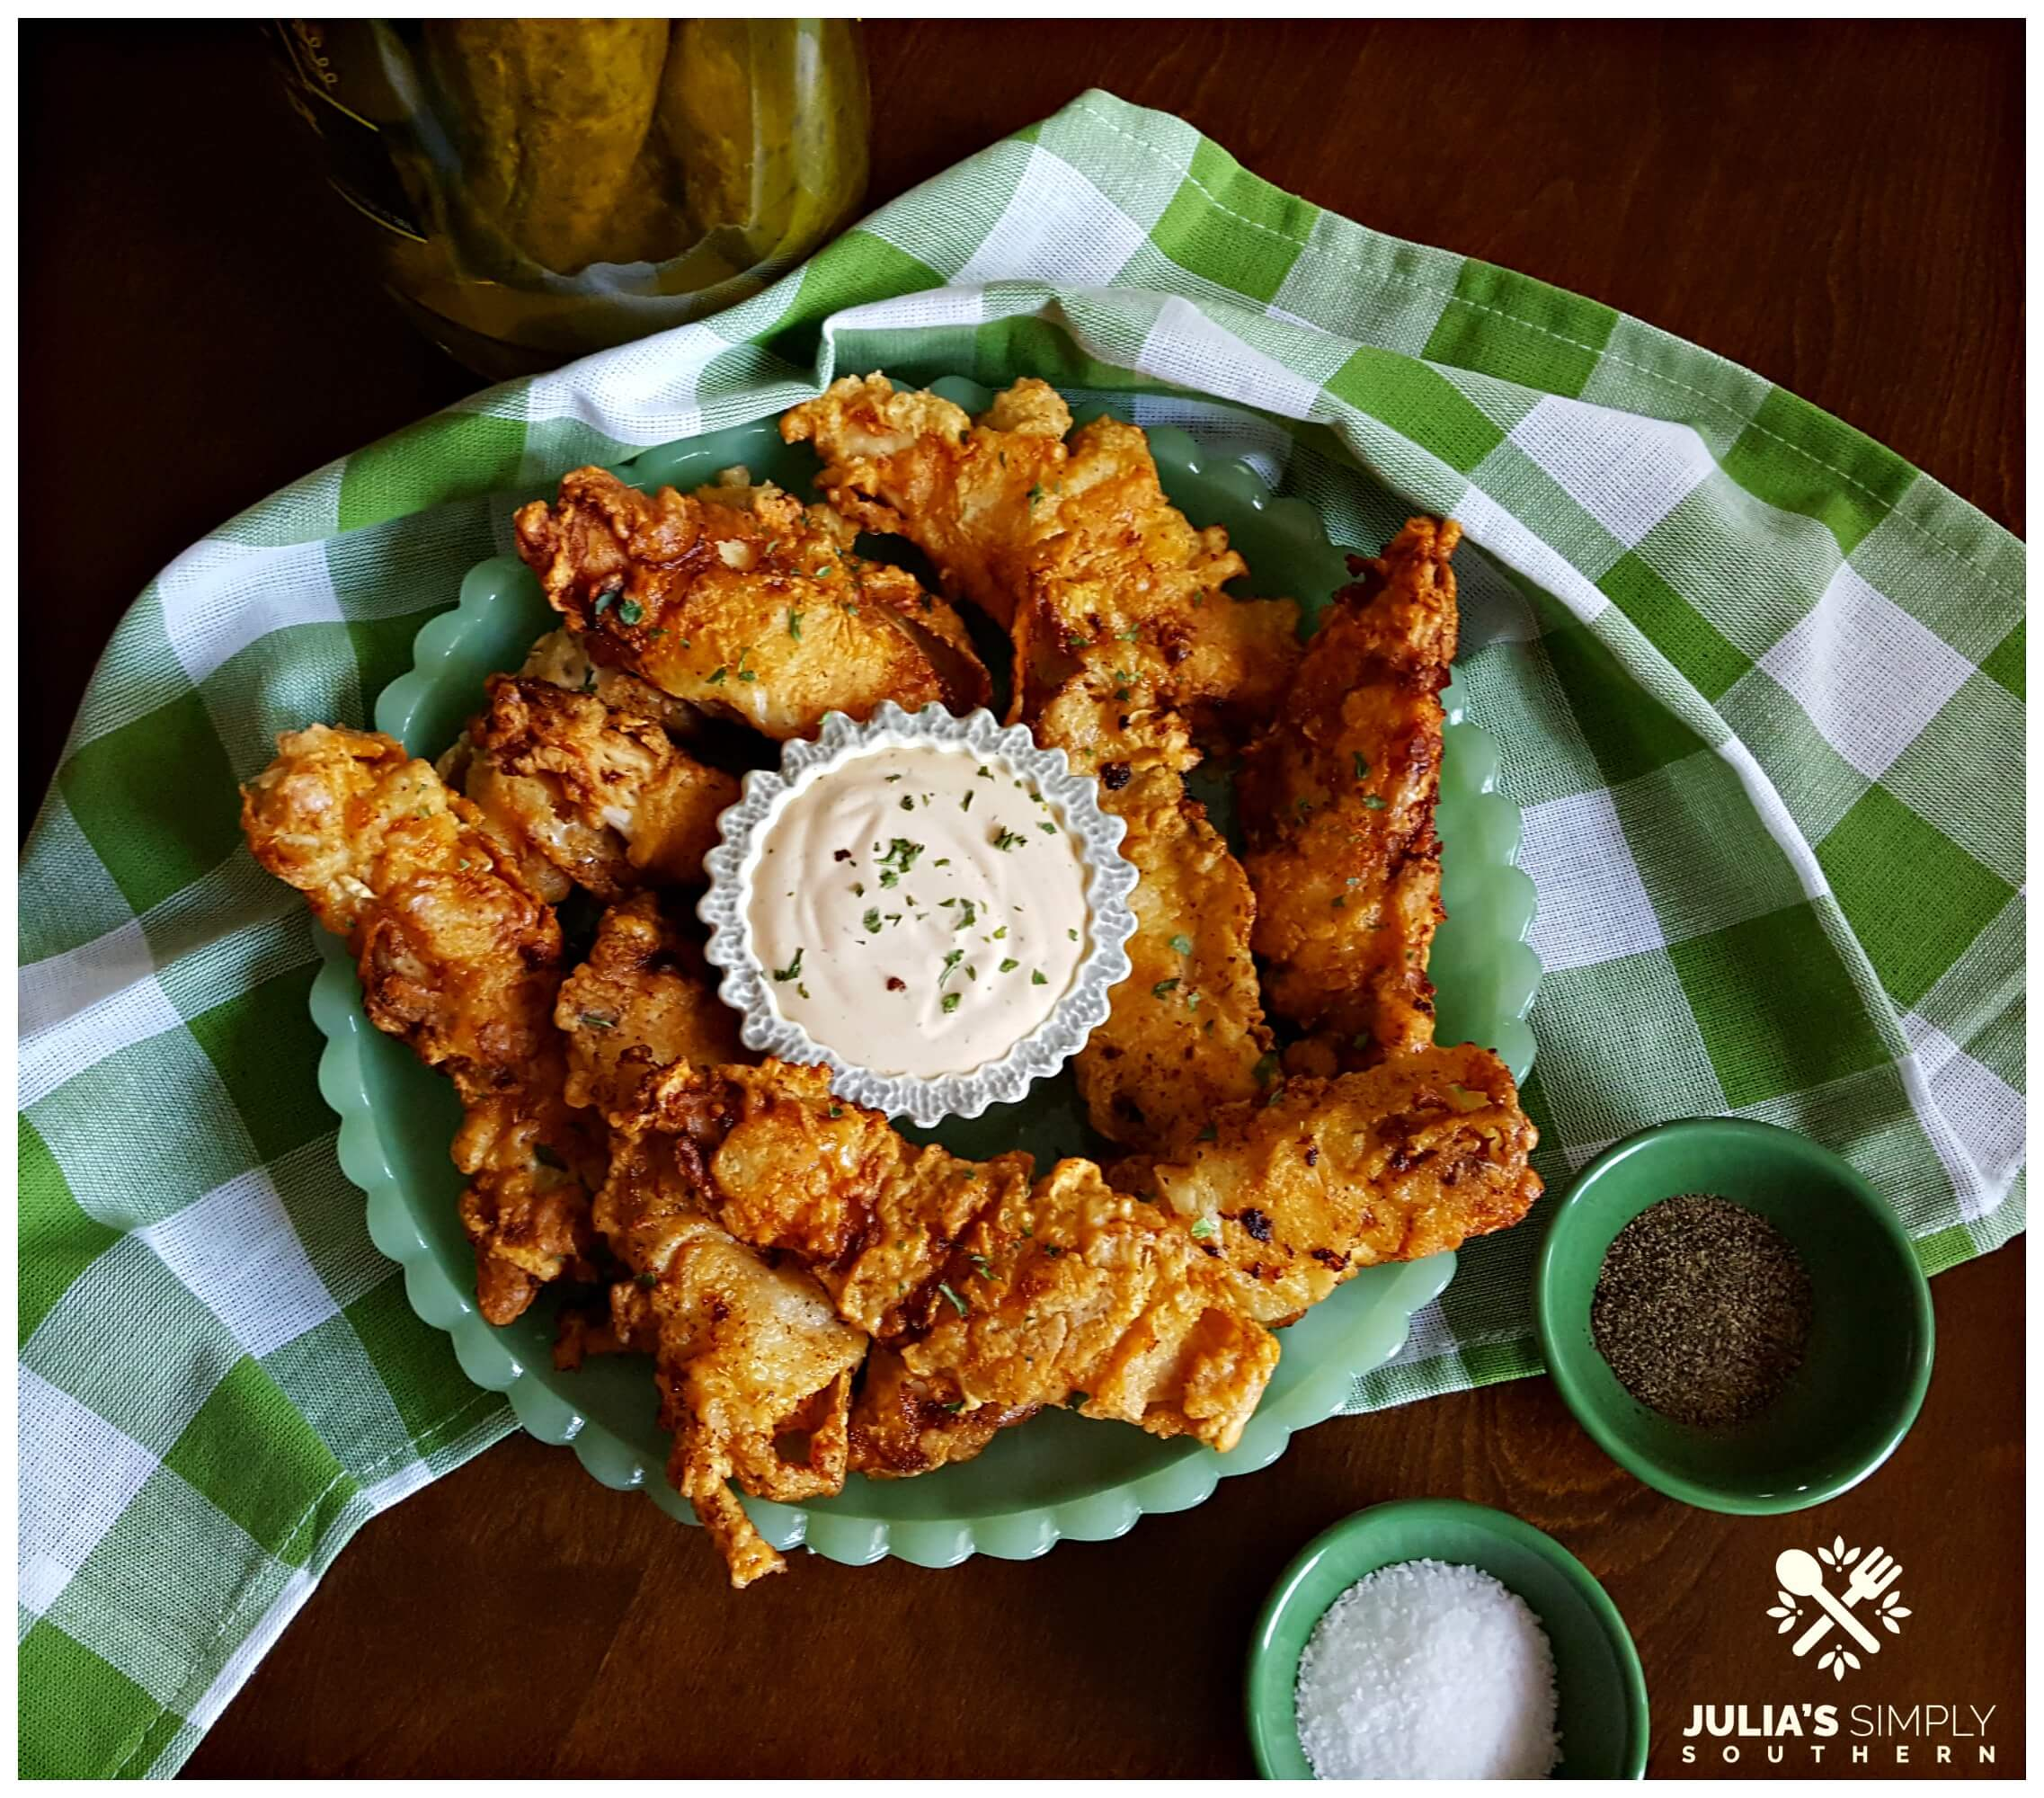 Meal Plan Monday Host Feature - Pickle Fried Chicken Breast Tenders